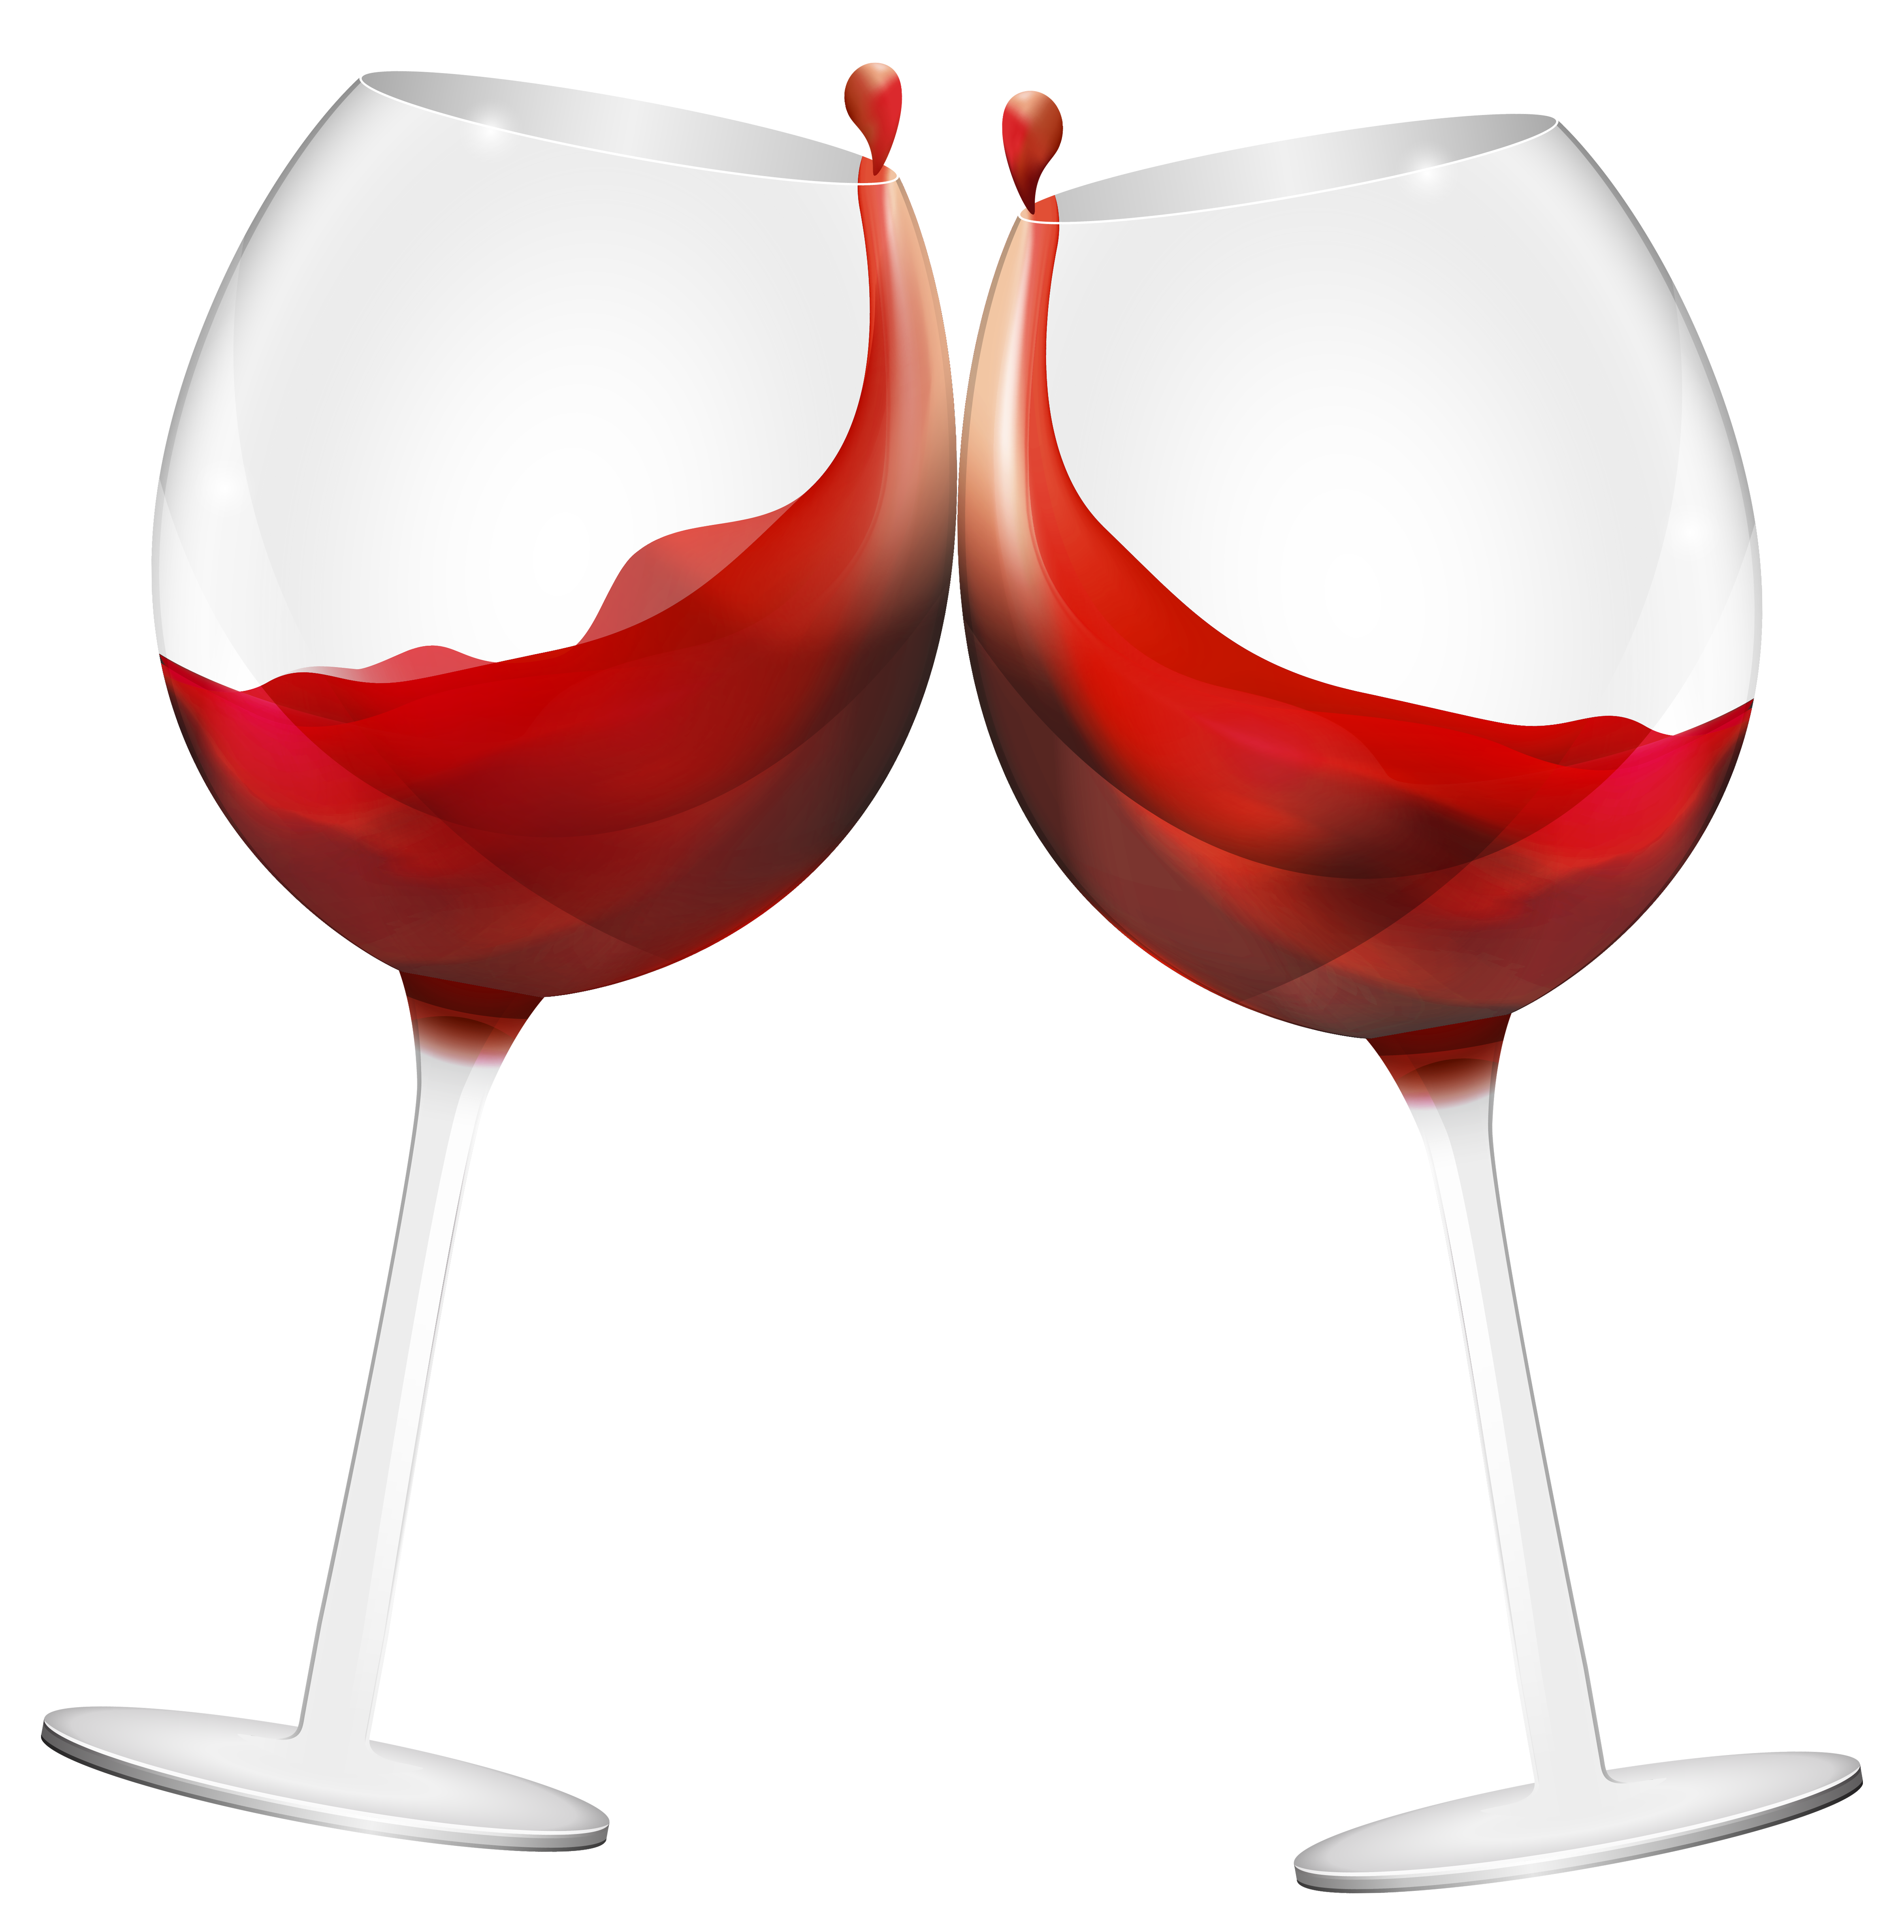 Wine glass clip art png. Wassail glasses gallery yopriceville